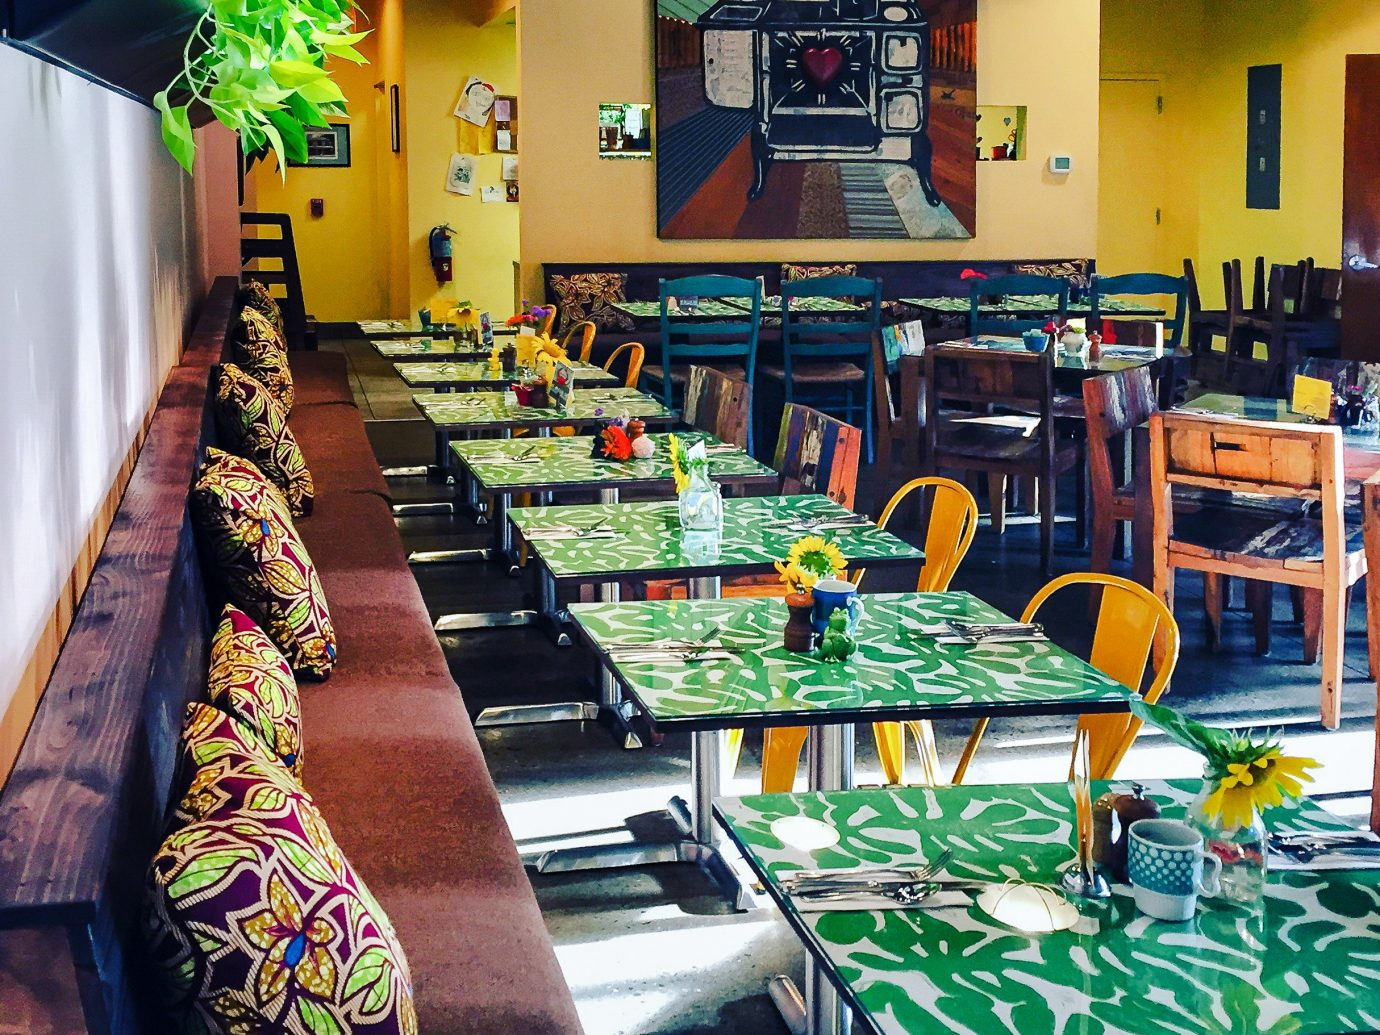 Trip Ideas indoor restaurant meal colorful interior design Bar colored